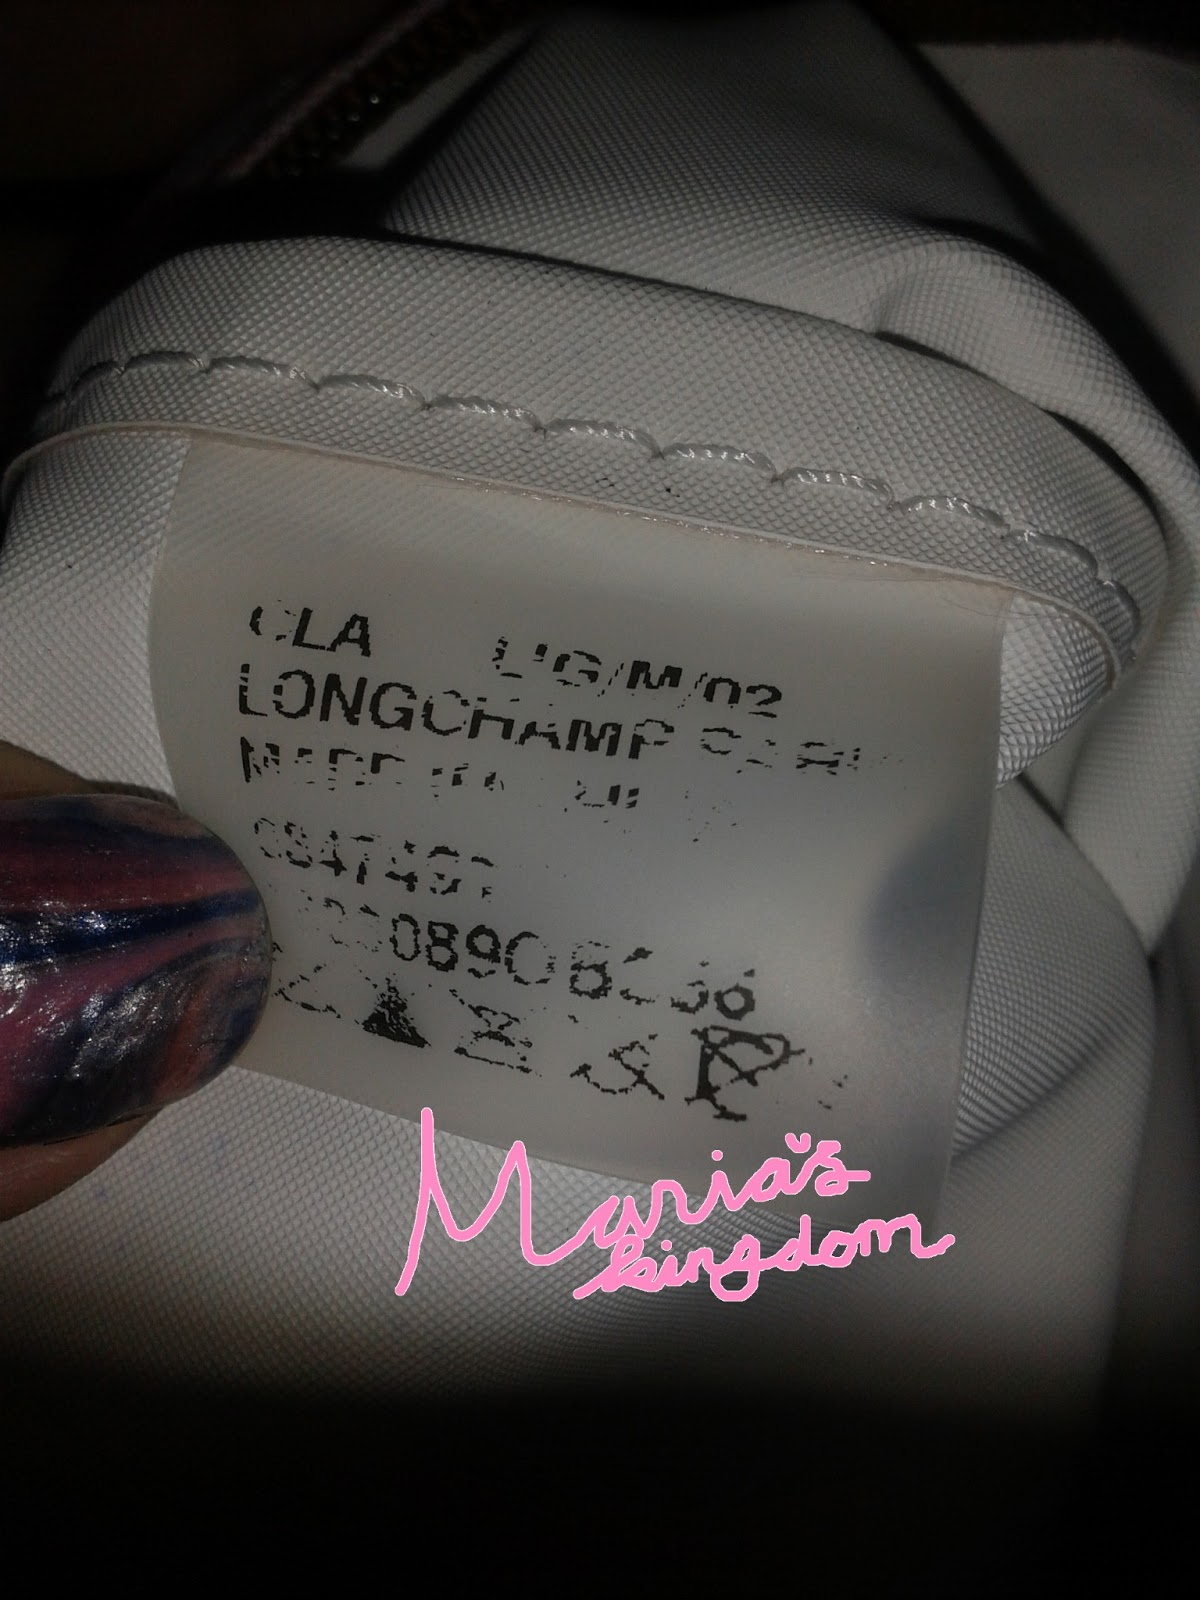 Marias Kingdom Cara Membedakan Tas Longchamp Palsu Dan Asli Le Pliage Neo Medium Tote Hitam Ini Ukuran M Warna Ungu Made In China